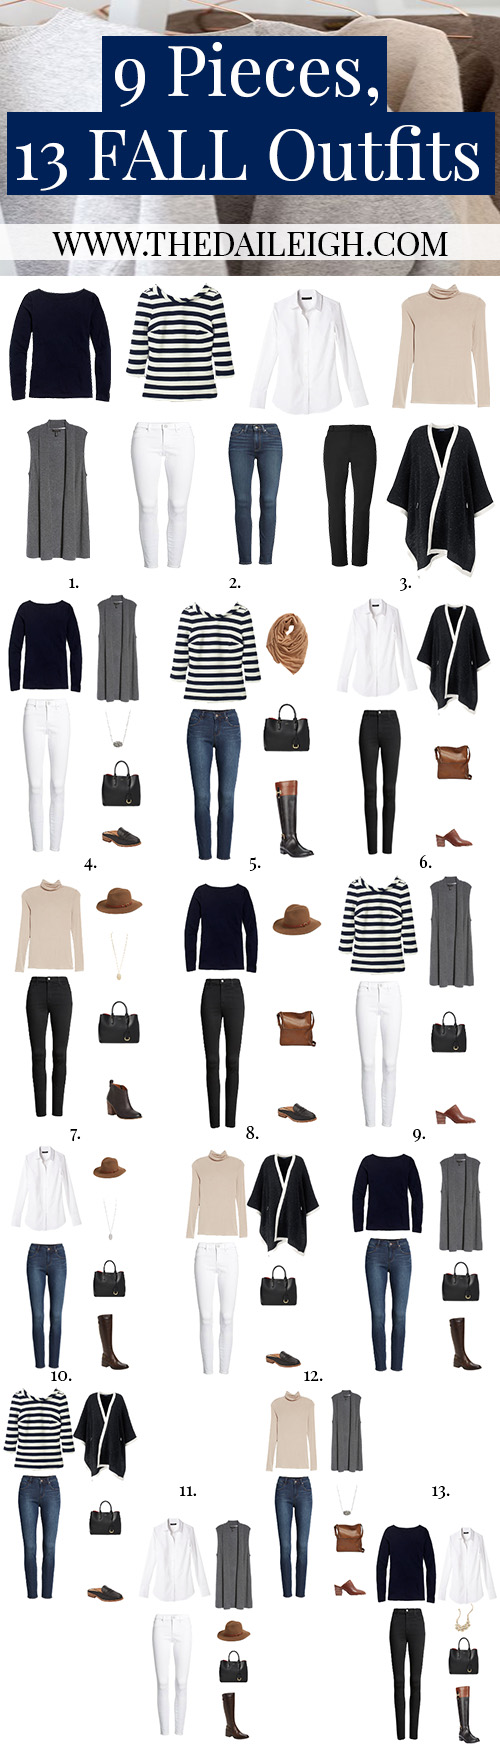 9 Pieces, 13 Classic Fall Outfits